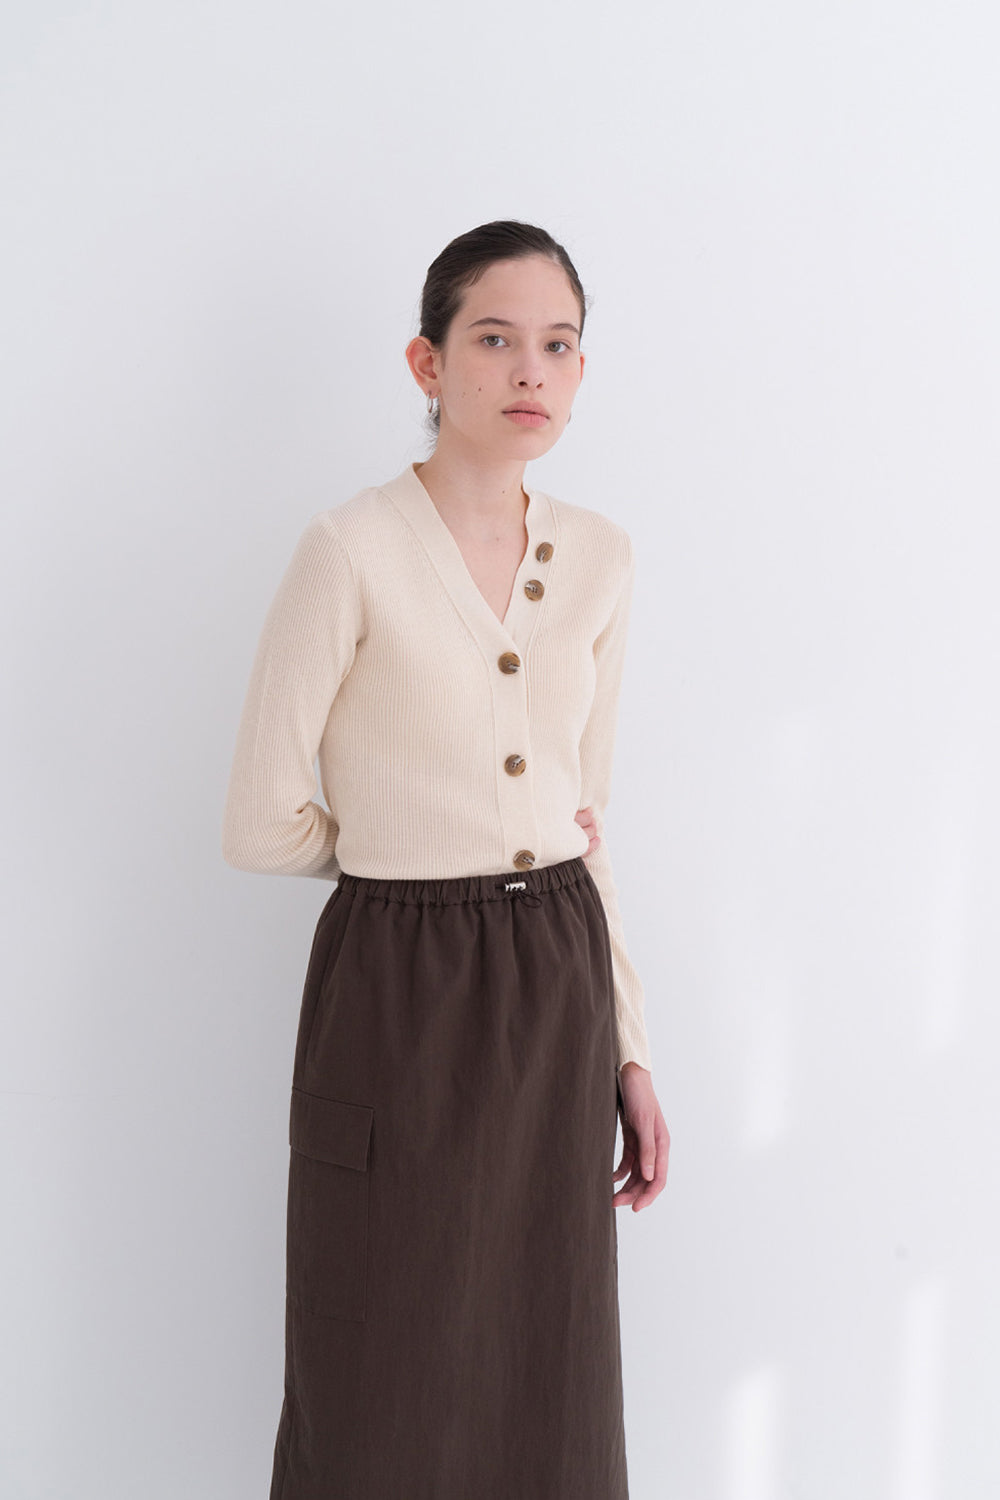 NOTA Twin Pocket String Skirt Brown Modest Below-The-Knee Length Skirt With Elastic Waistband and Side Pockets in Cotton and Nylon